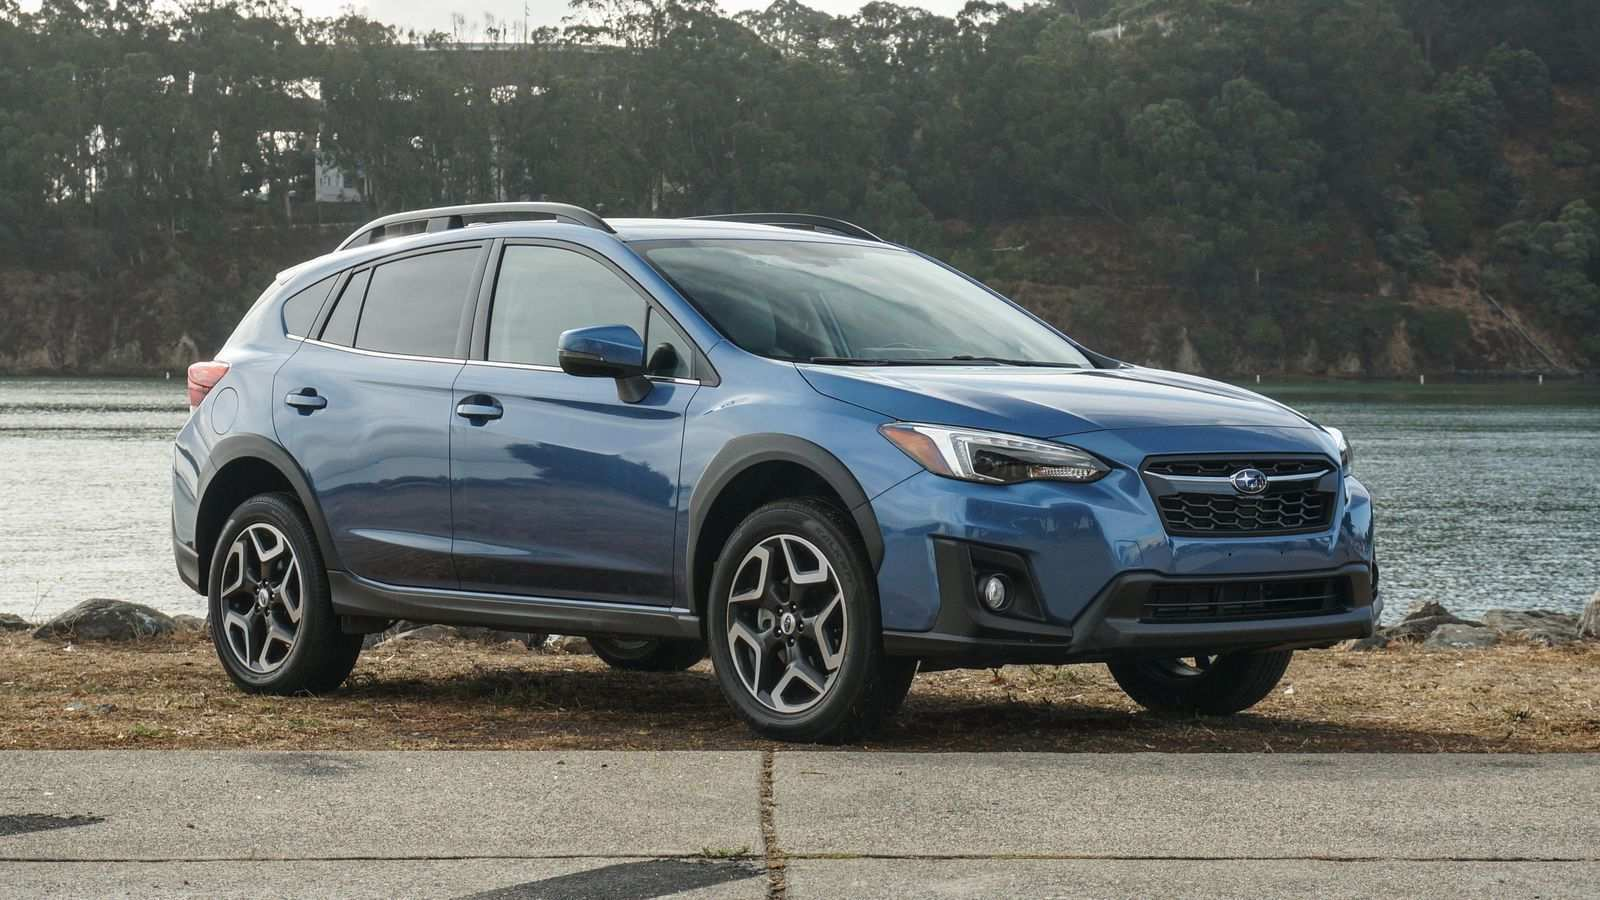 63 The Best Subaru Electric Car 2019 First Drive